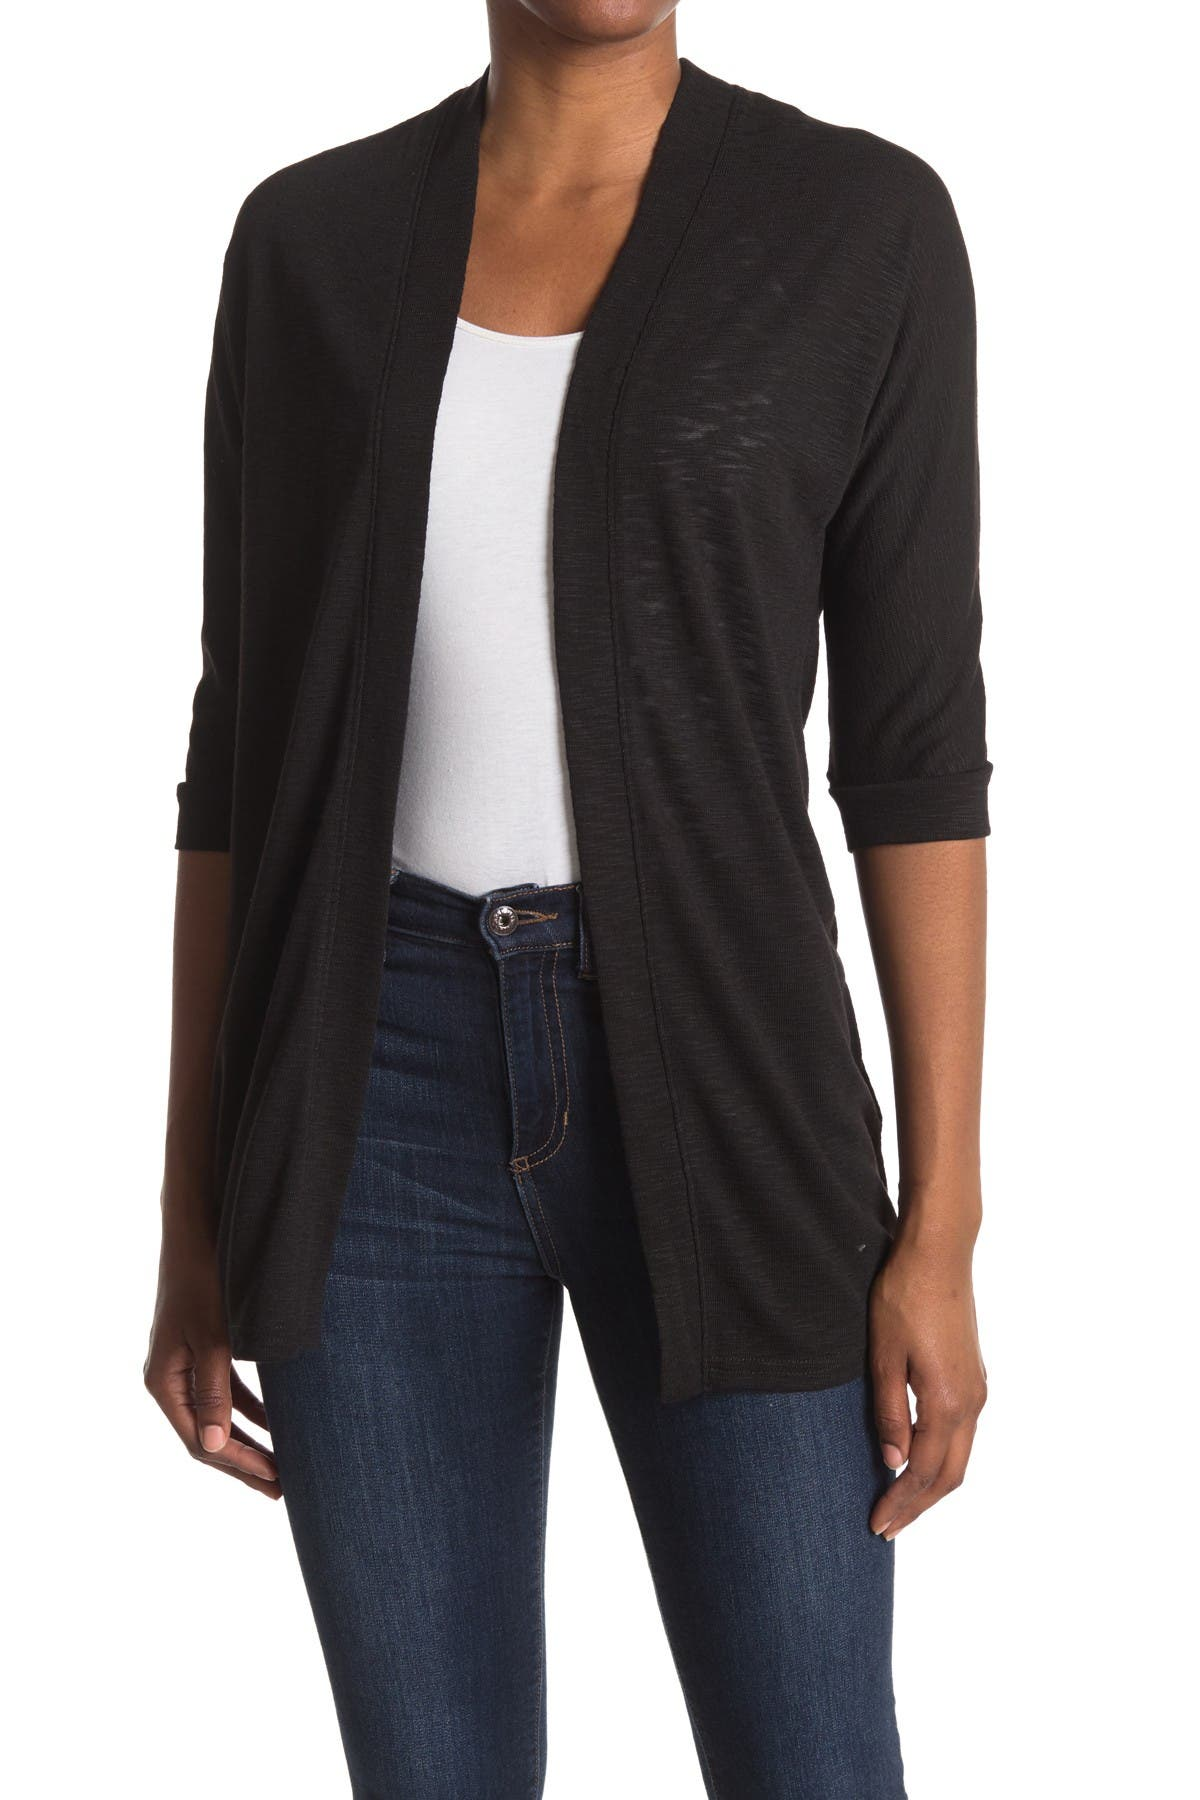 Image of Laundry By Shelli Segal Dolman Sleeve Knit Cardigan